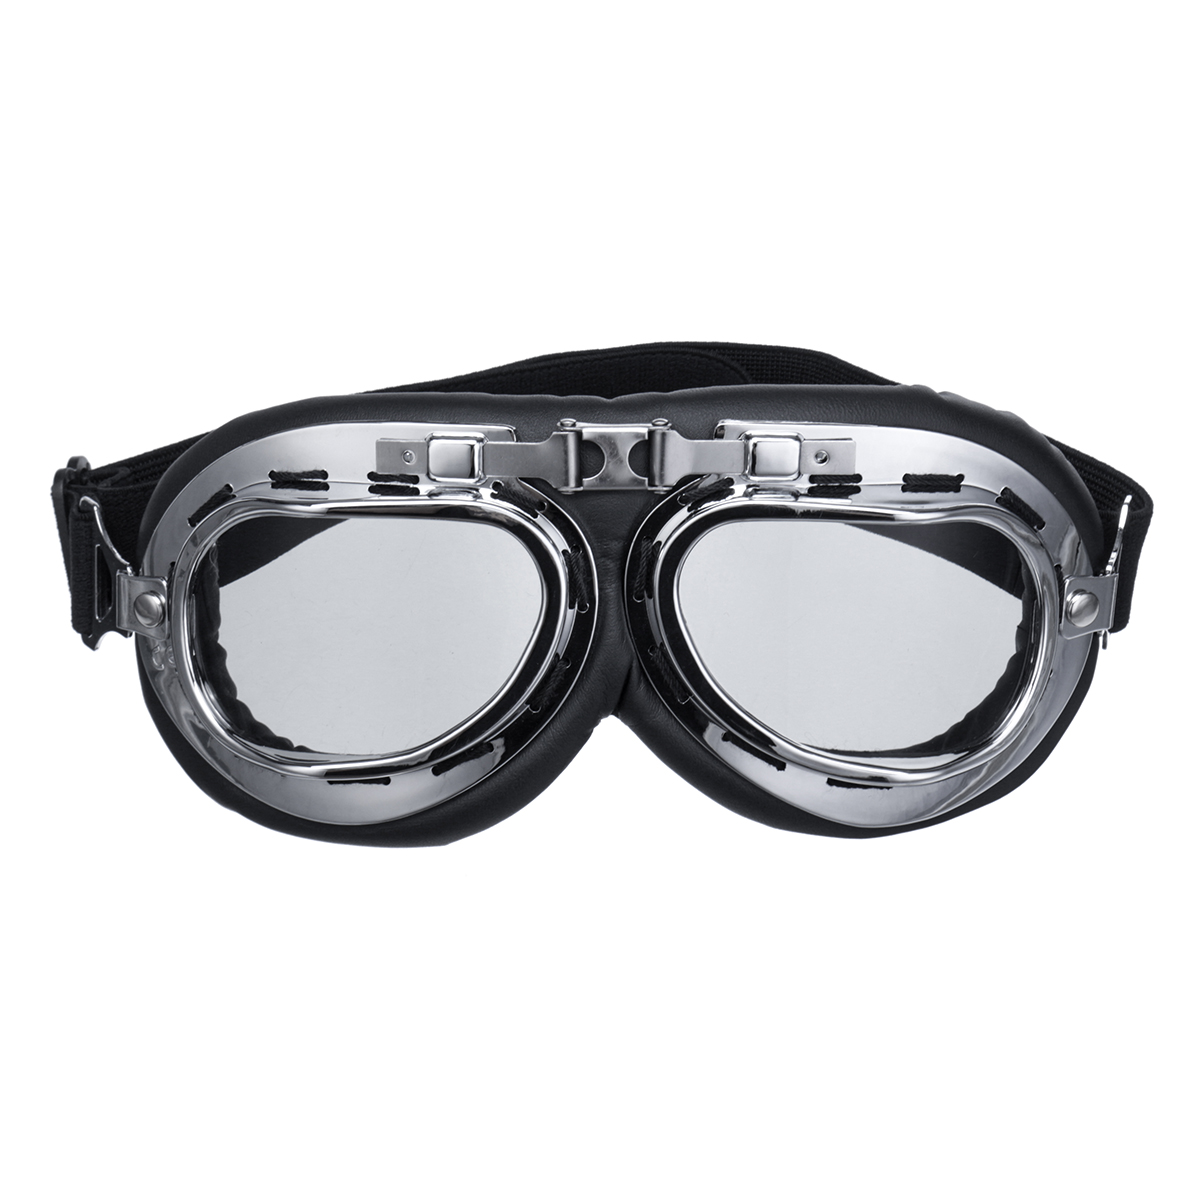 Retro Helmet Goggles Motorcycle Scooter Cycling Riding Eyewear Glasses